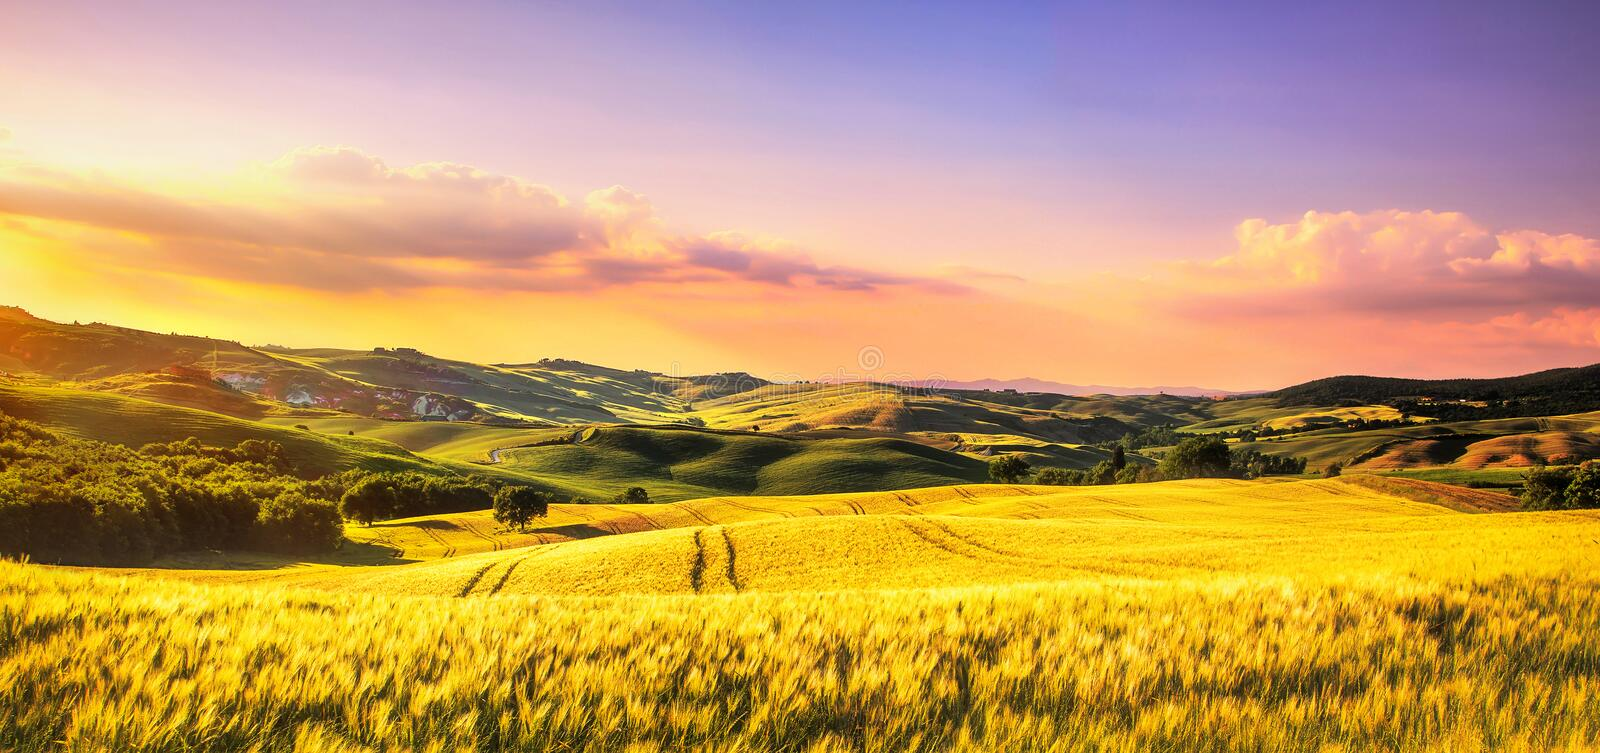 Tuscany spring, rolling hills at sunset. Rural landscape. Whaet, green fields and trees Italy stock photo